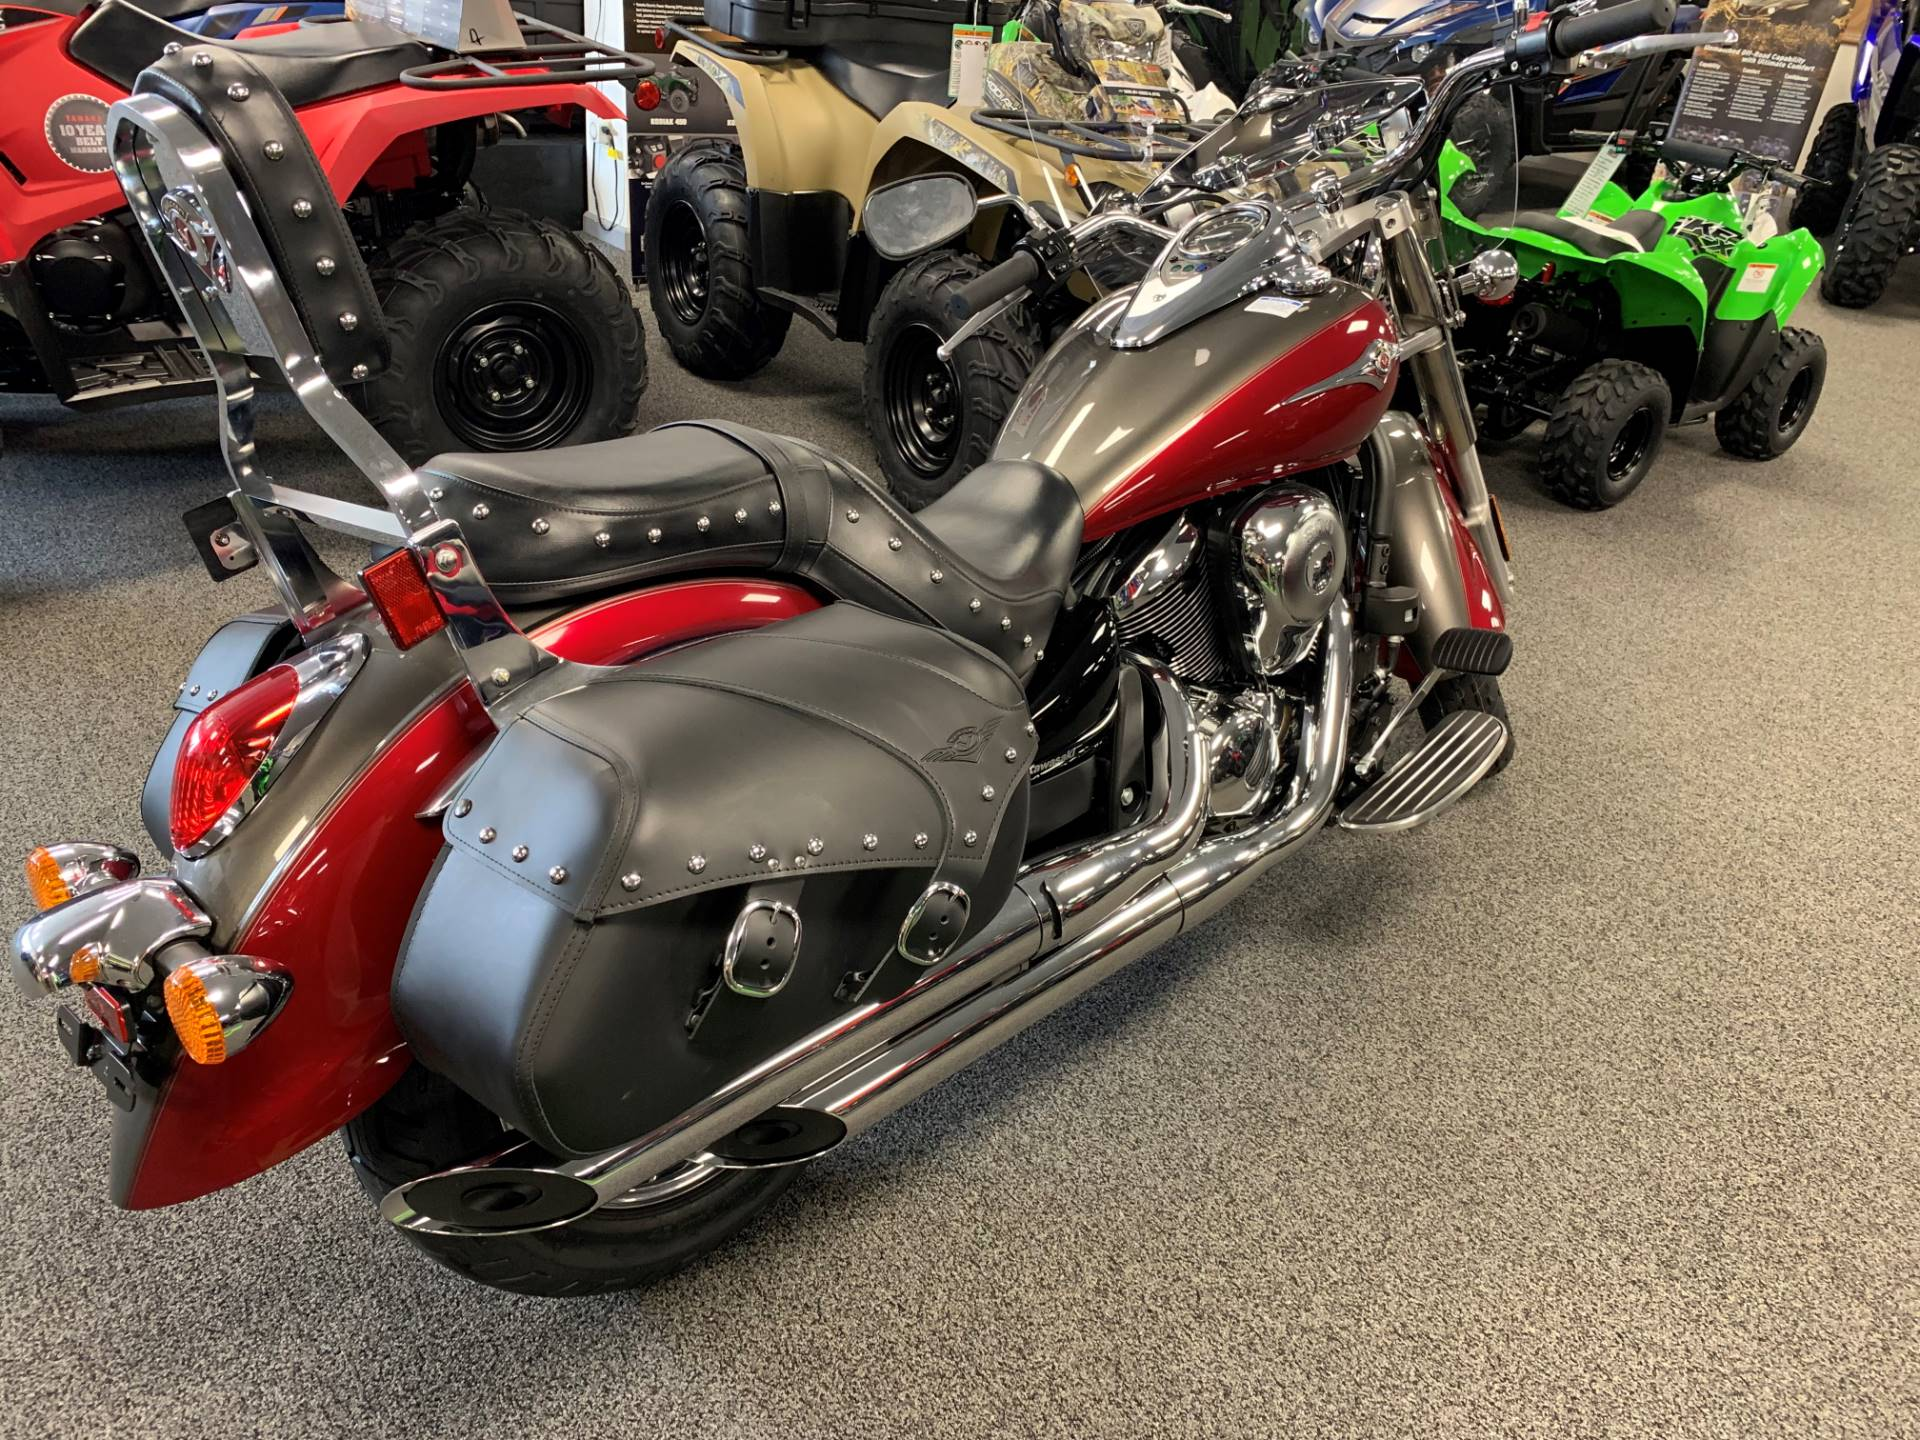 2018 Kawasaki Vulcan 900 Classic LT in Honesdale, Pennsylvania - Photo 2